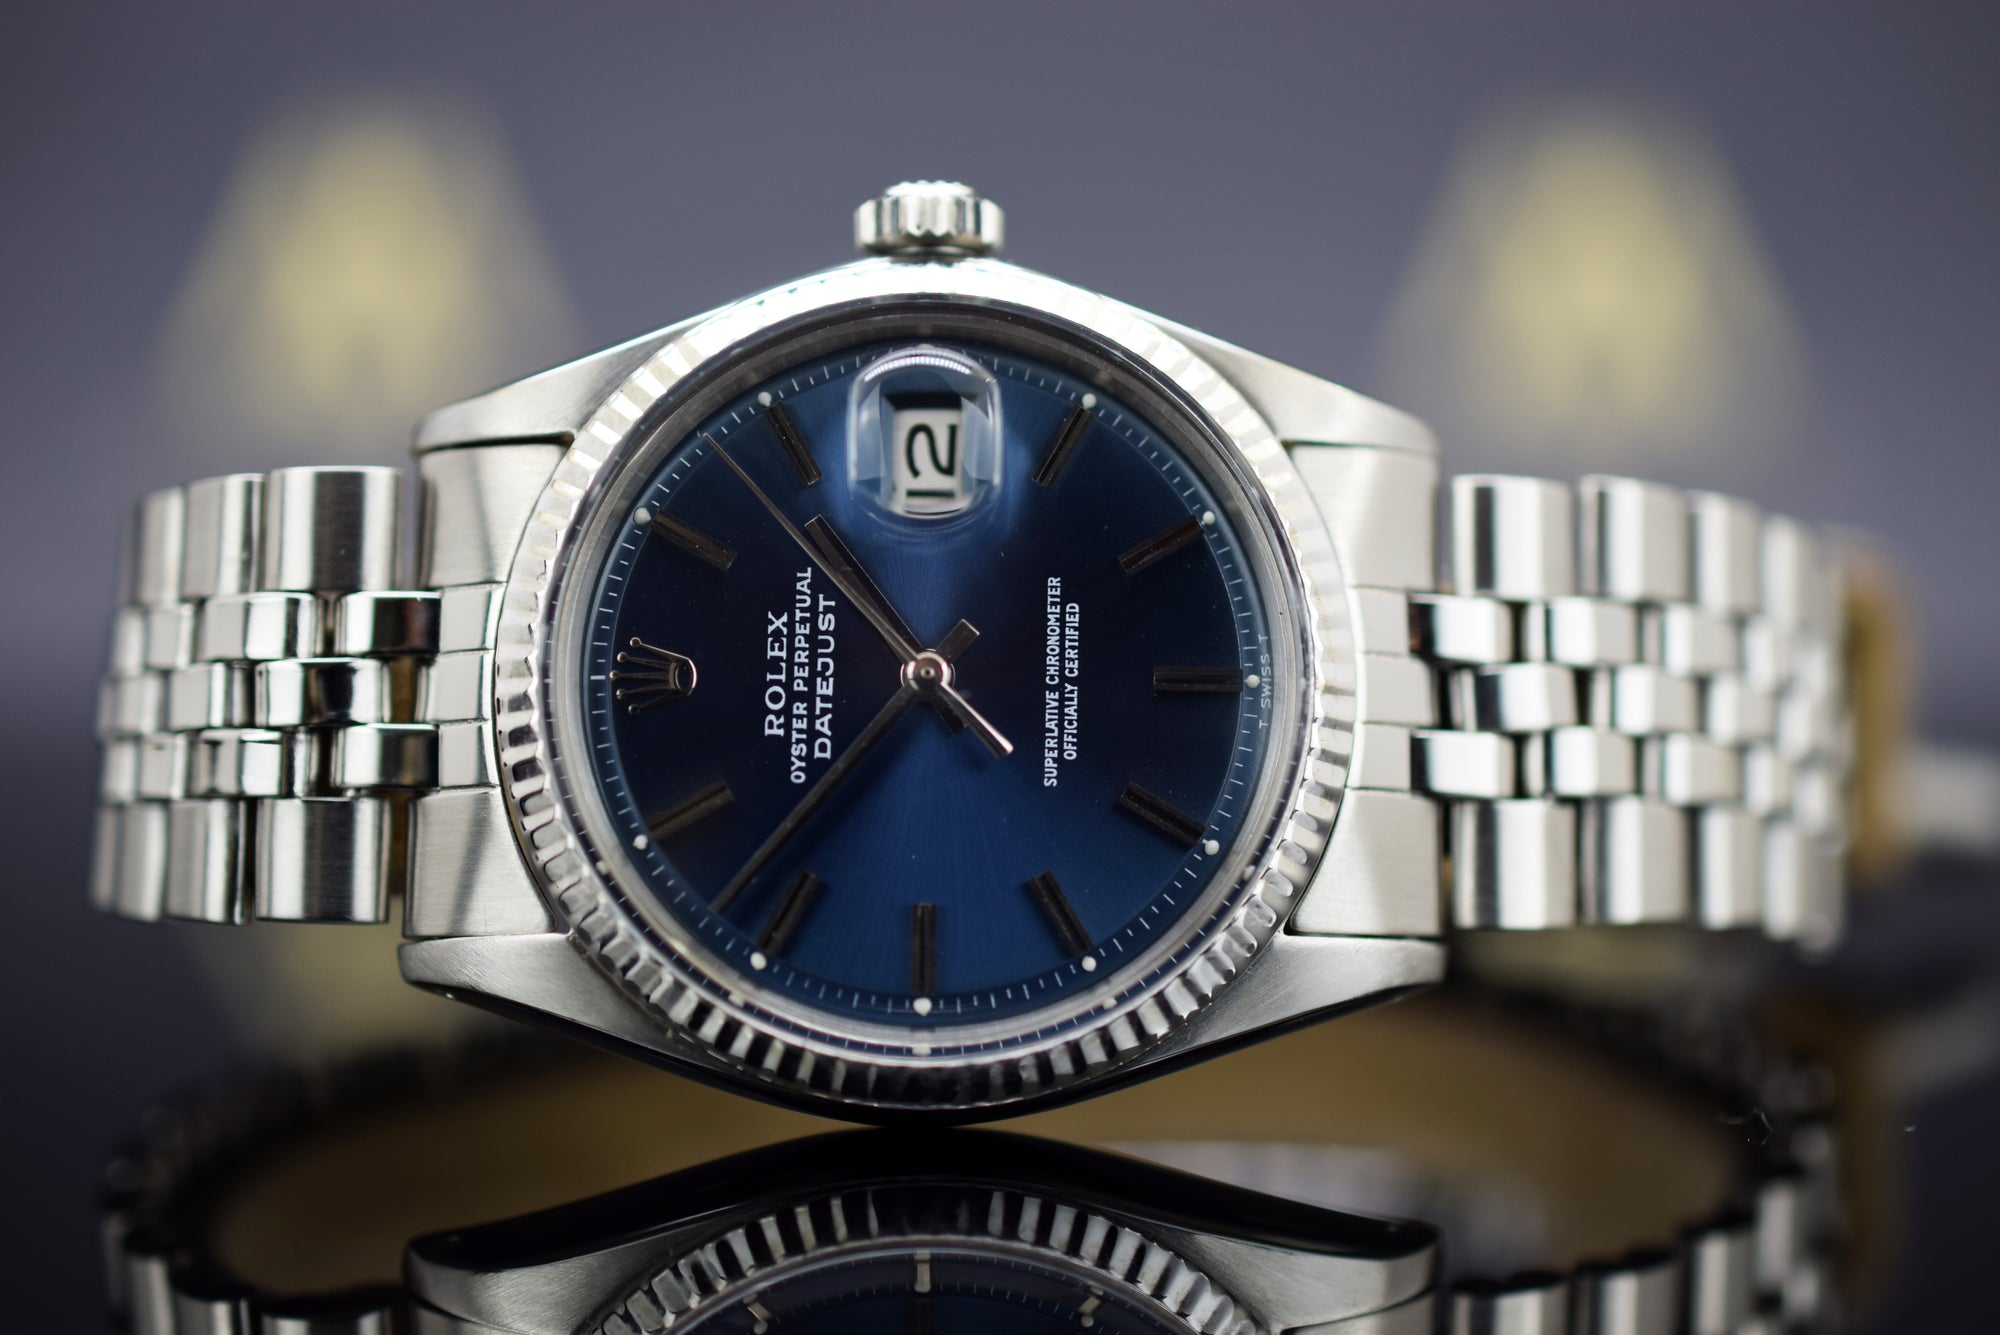 Rolex Oyster Perpetual Datejust 36mm - Aus 1970